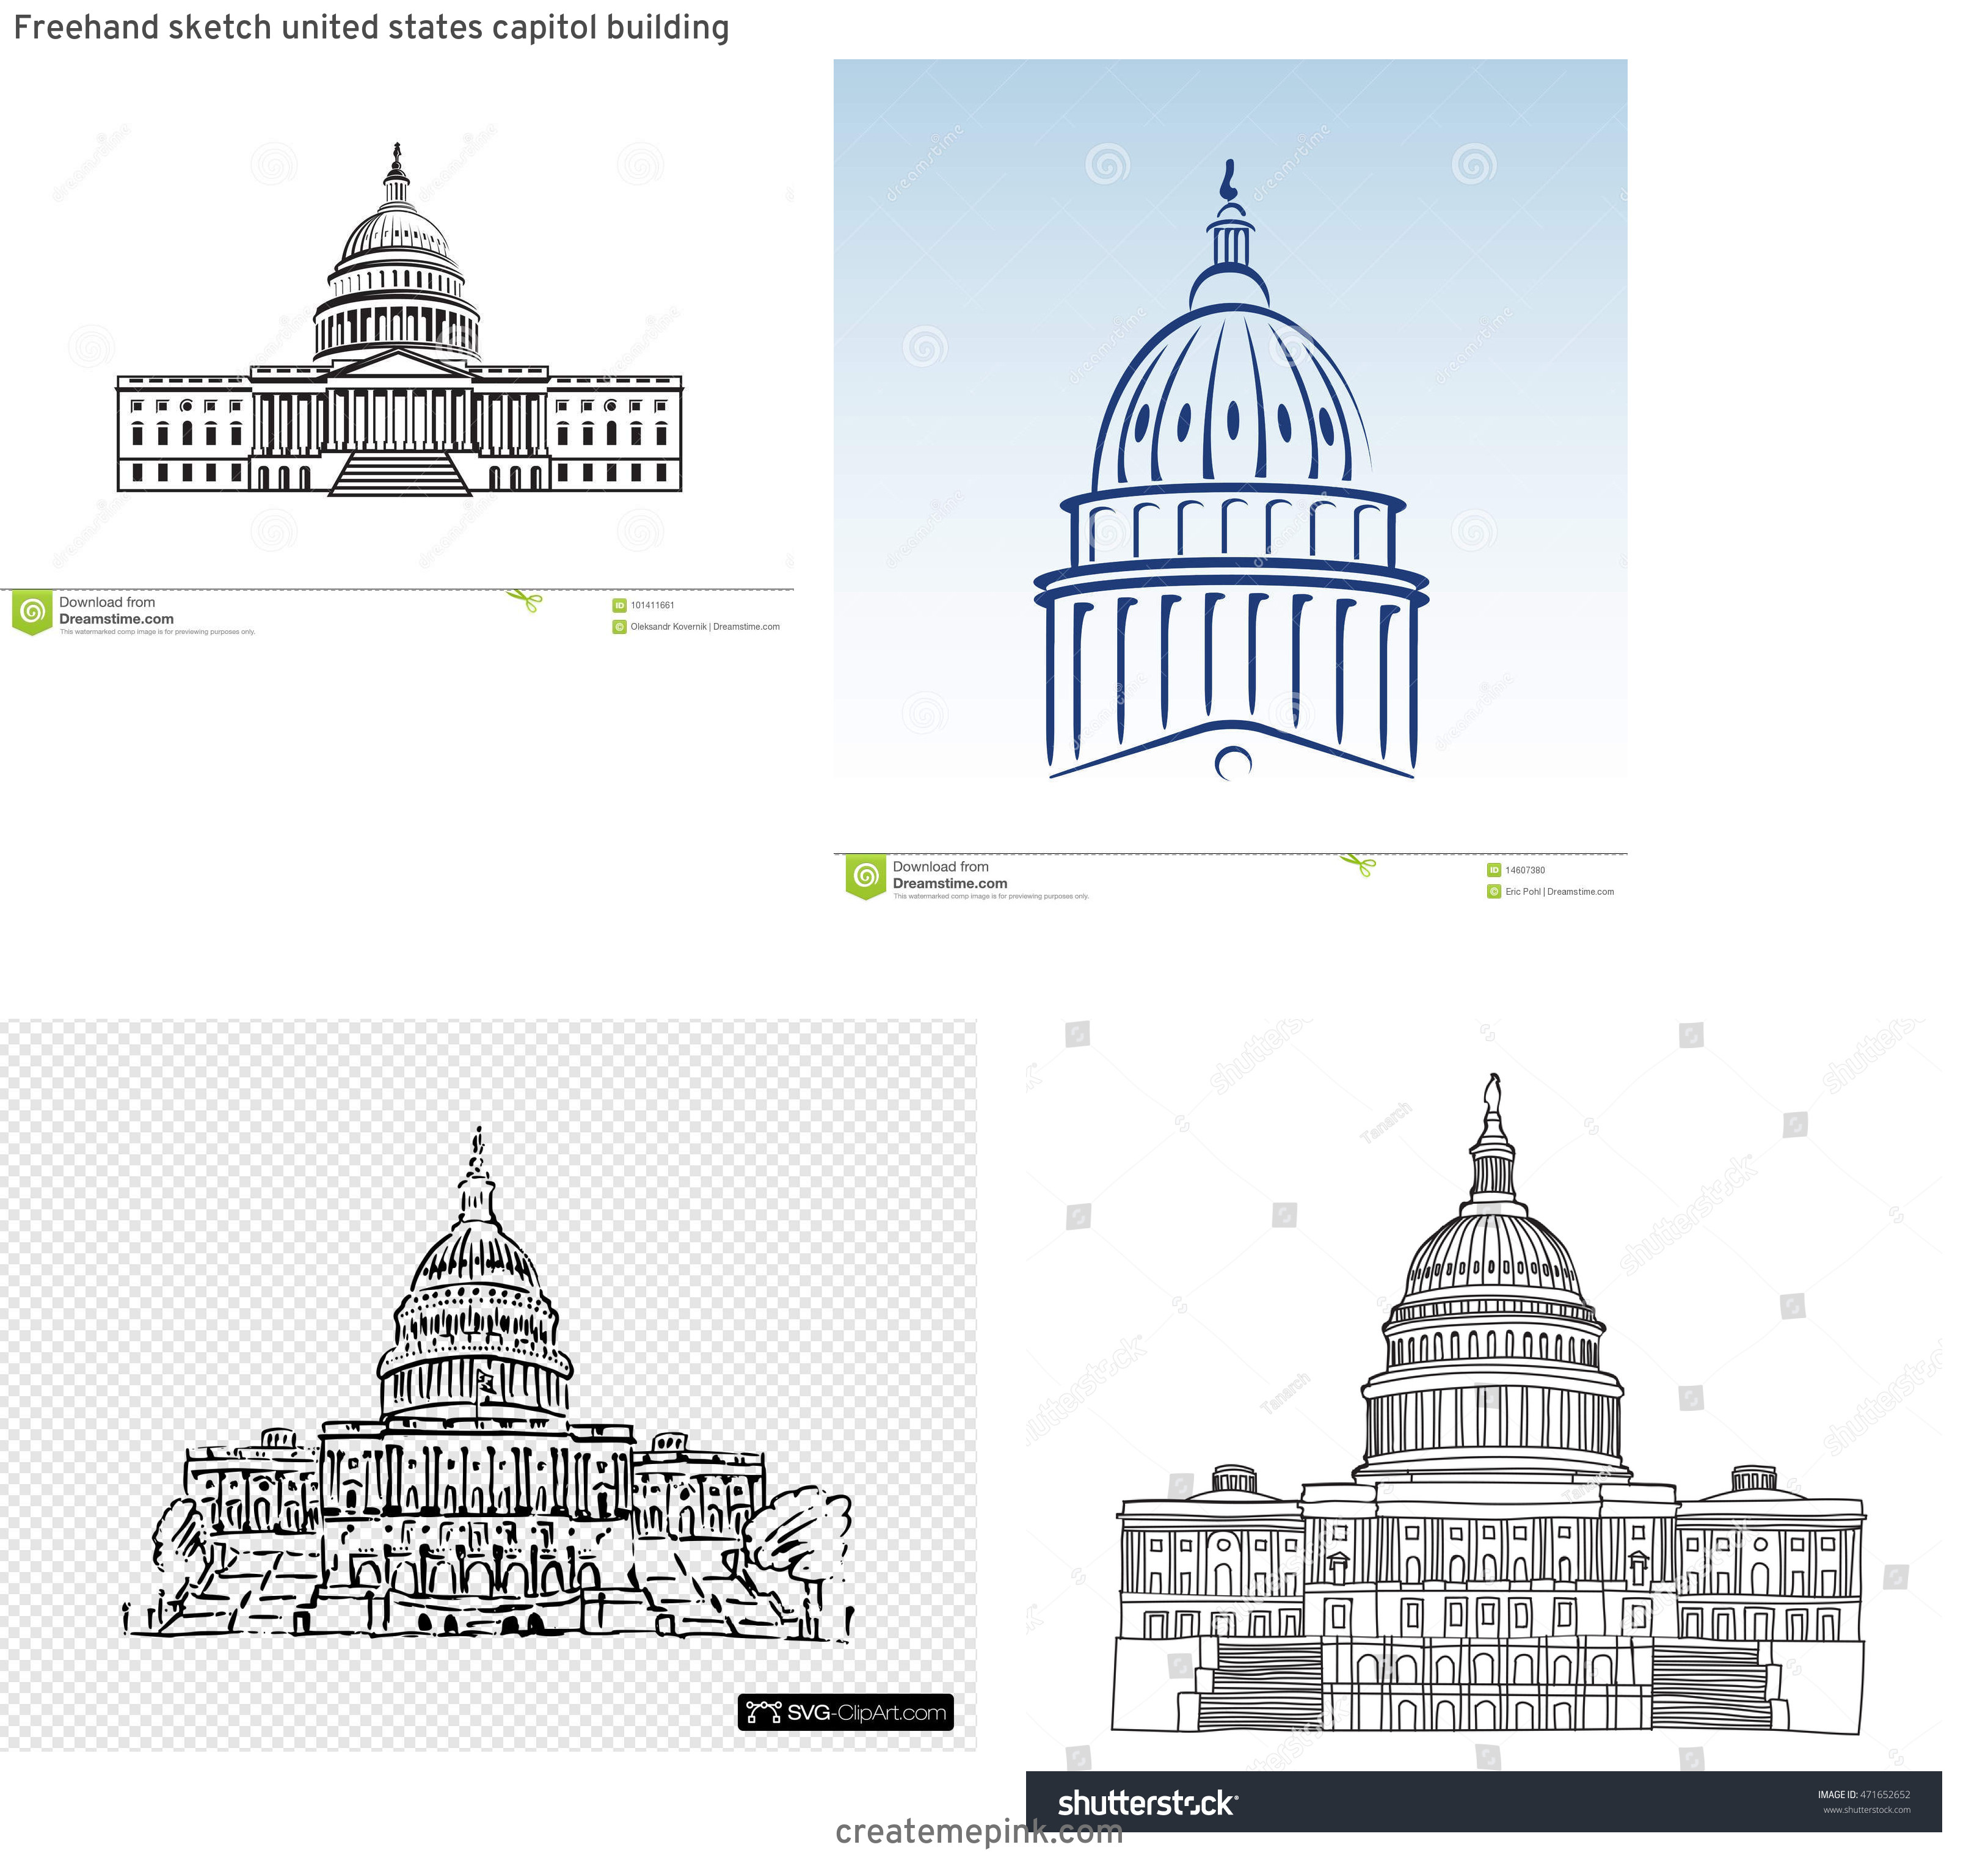 US Capital Vector Line Drawing: Freehand Sketch United States Capitol Building